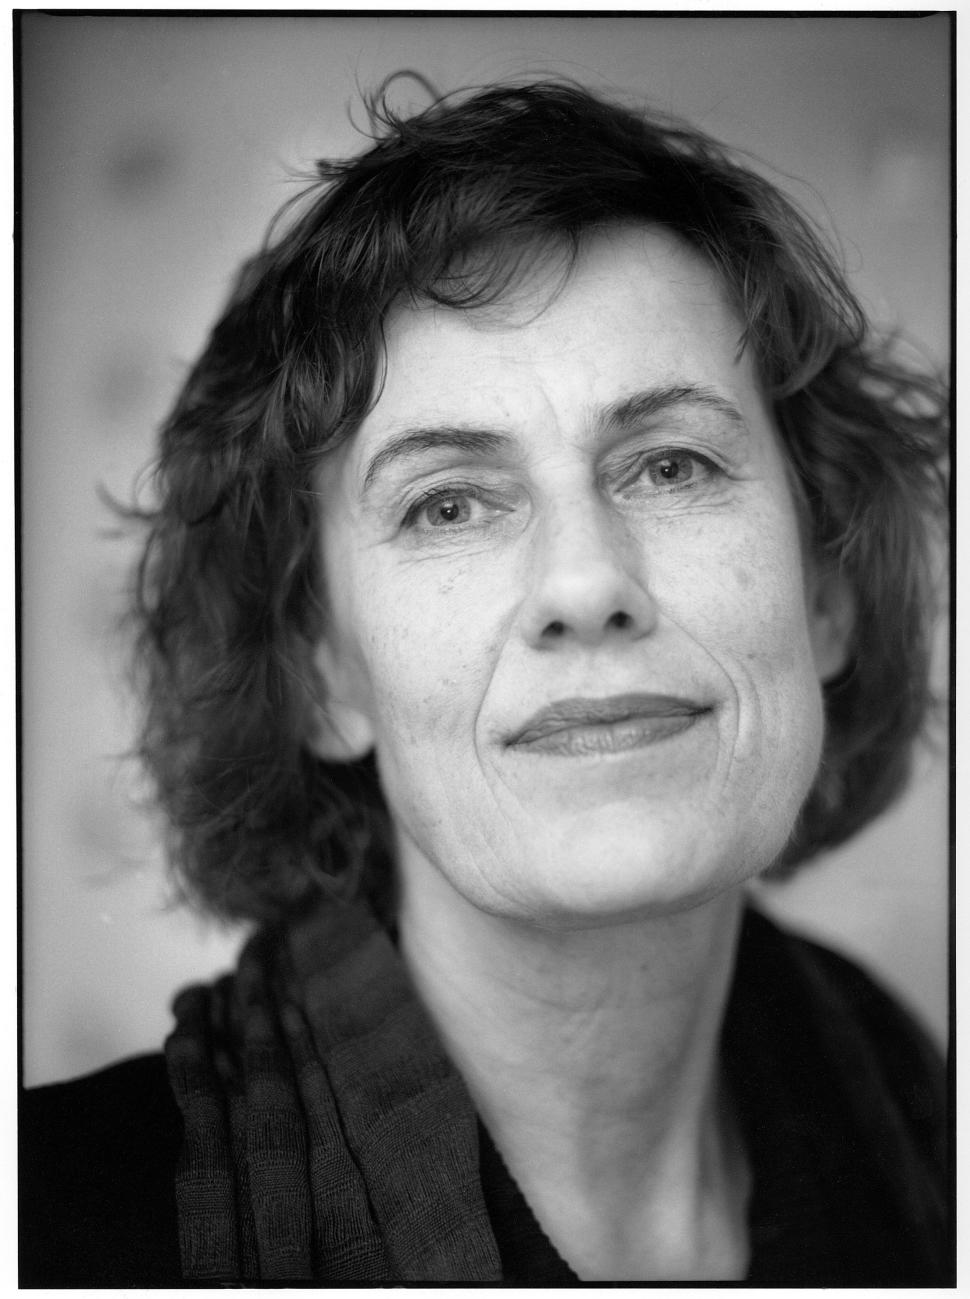 Portrait of Liv Køltzow, 2003Photographer: Cato Lein, cato@lein.as